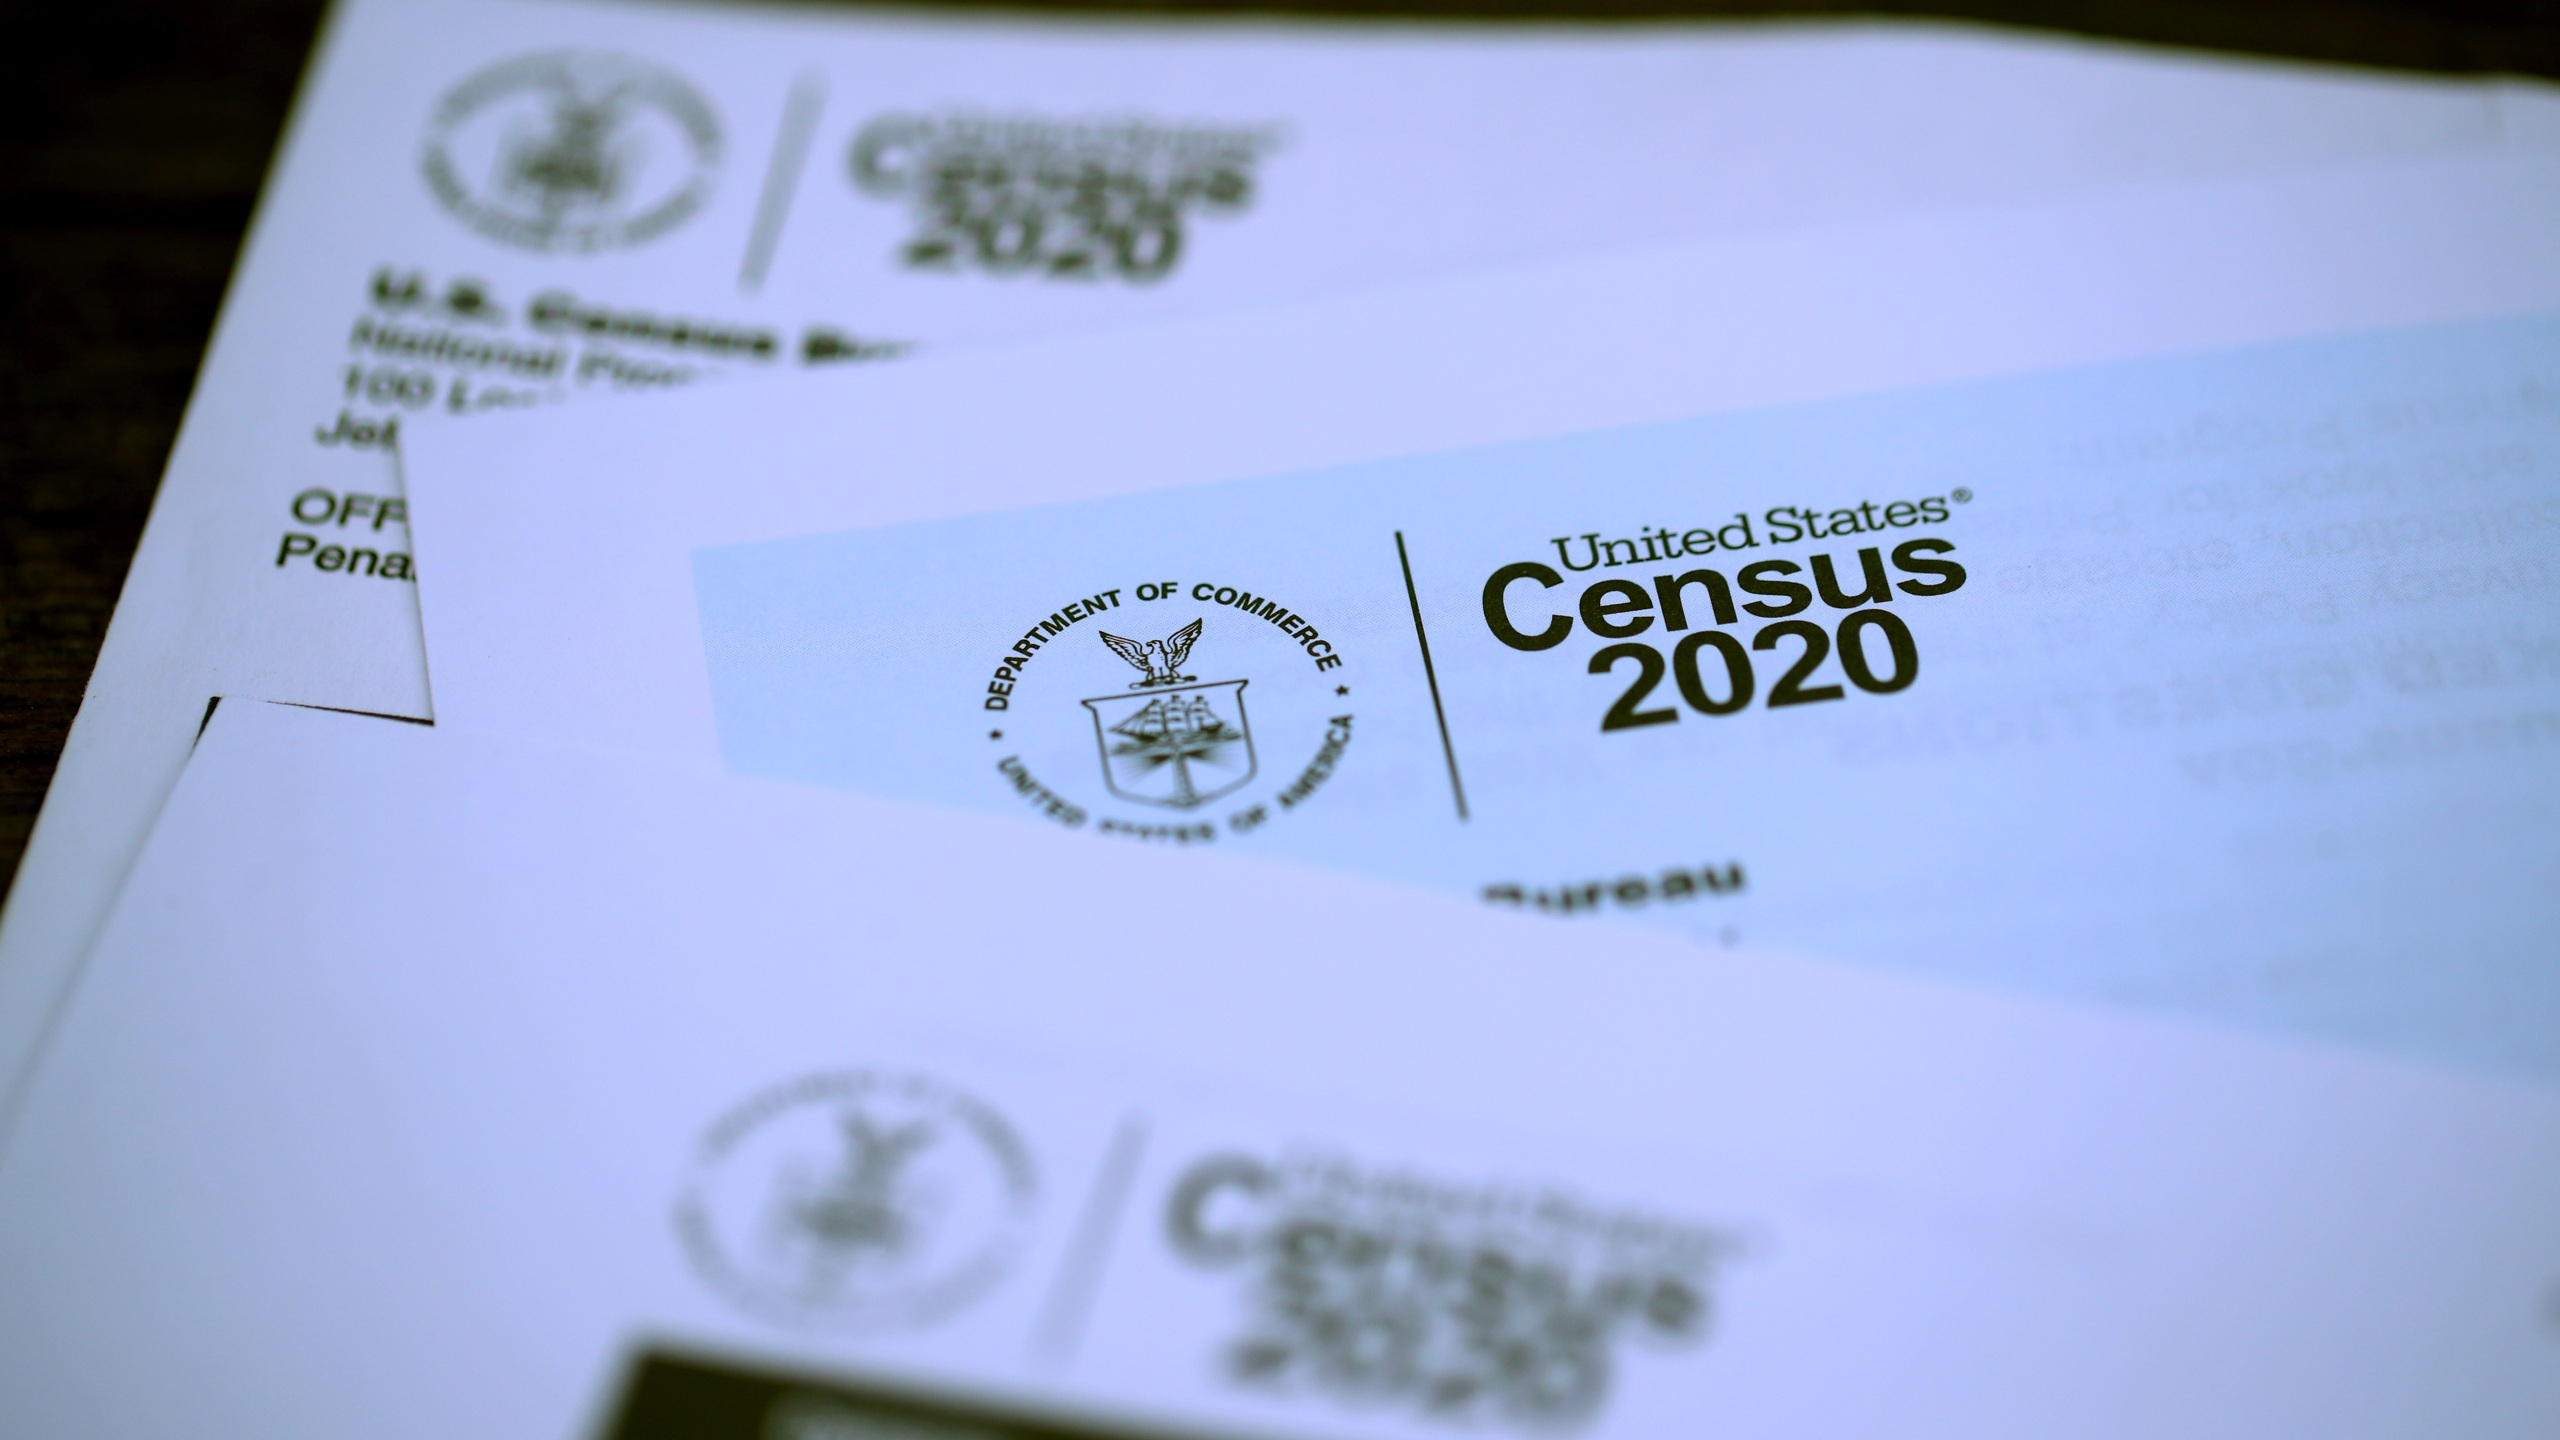 The U.S. Census logo appears on census materials received in the mail with an invitation to fill out census information online on March 19, 2020, in San Anselmo, California. (Justin Sullivan/Getty Images)